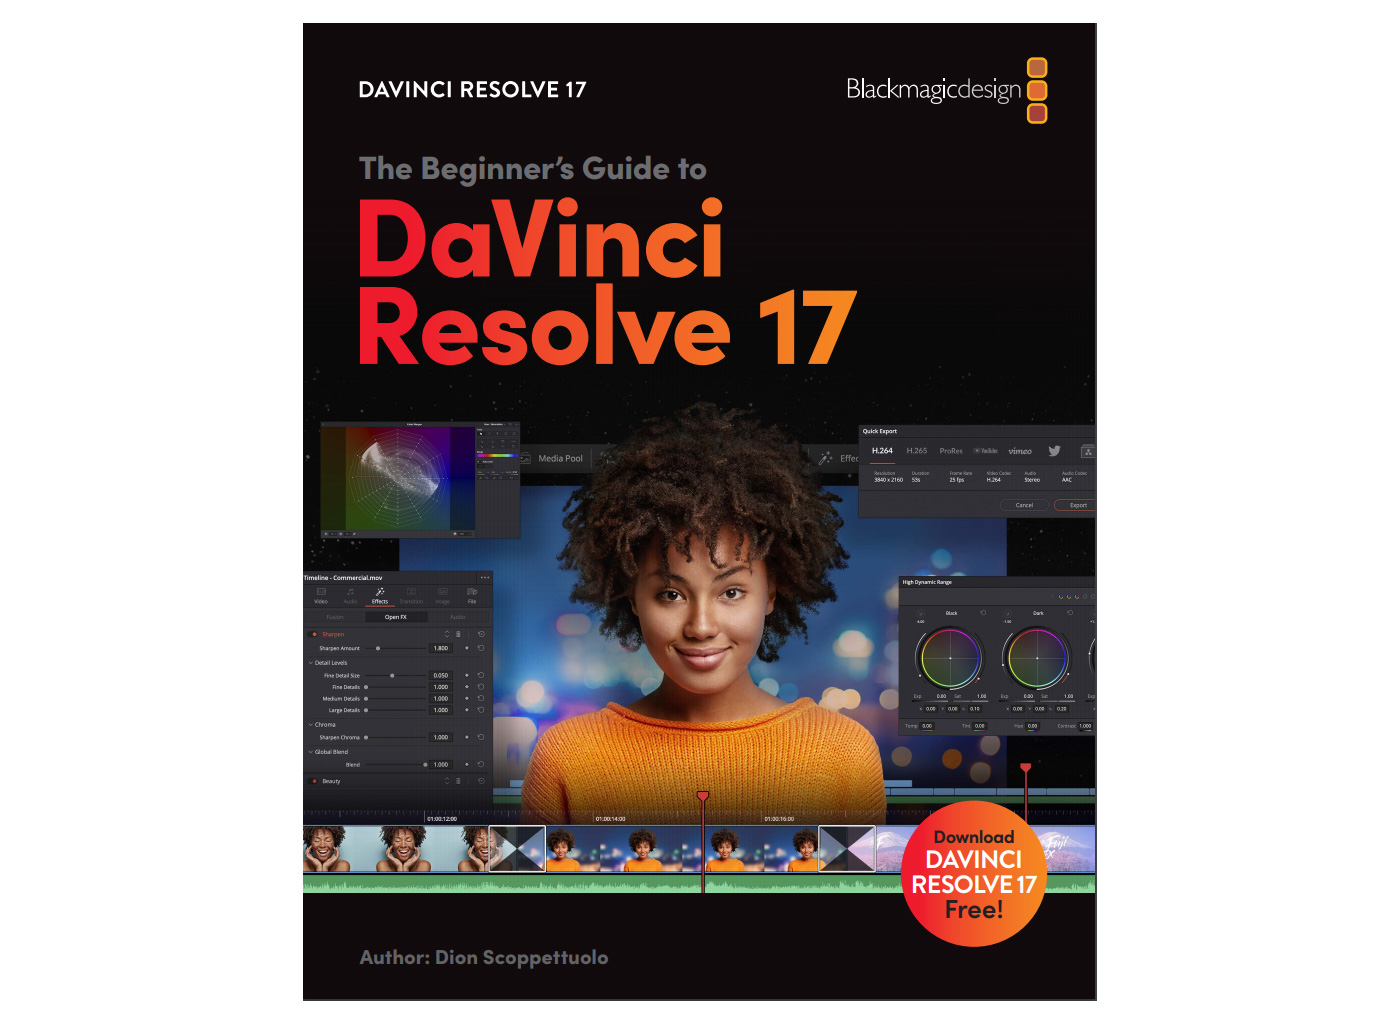 Free beginner's guide to DaVinci Resolve 17 with optional certificate